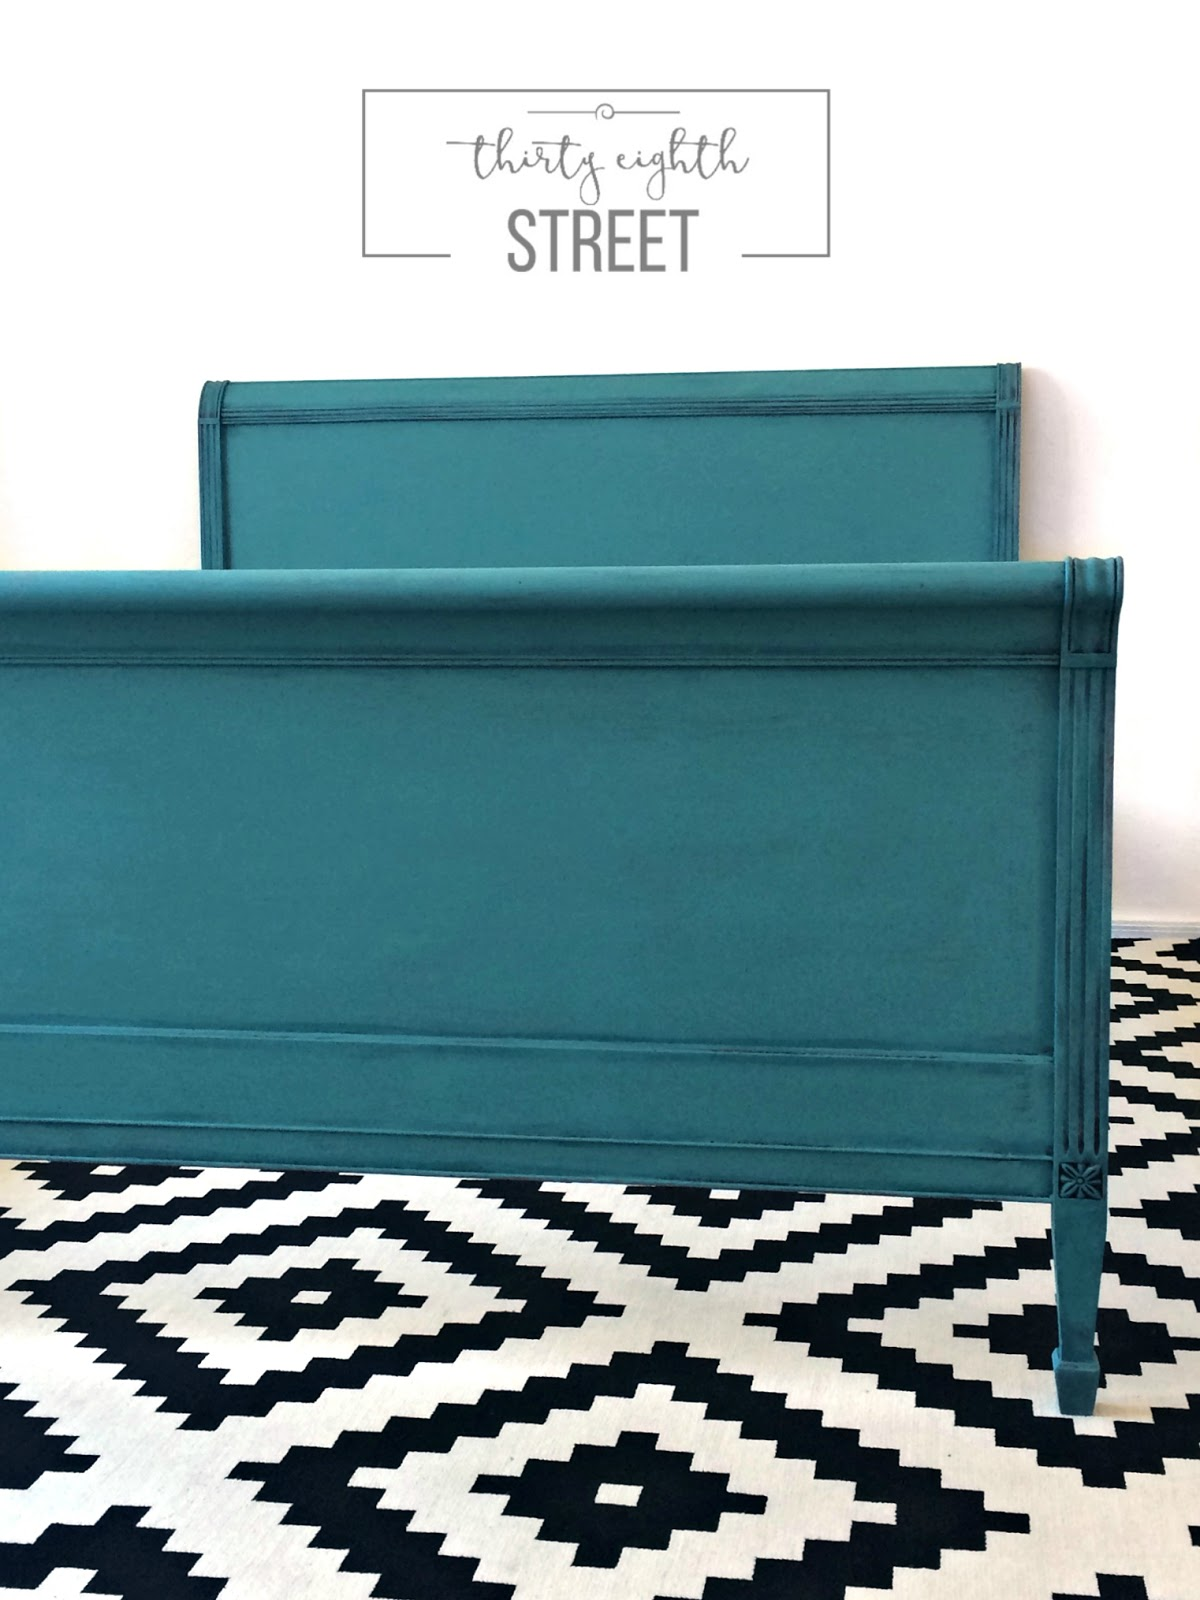 distressing furniture, how to distress furniture, turquoise bed, how to update old furniture, turquoise inspiration, ideas for turquoise furniture, distressed turquoise bed